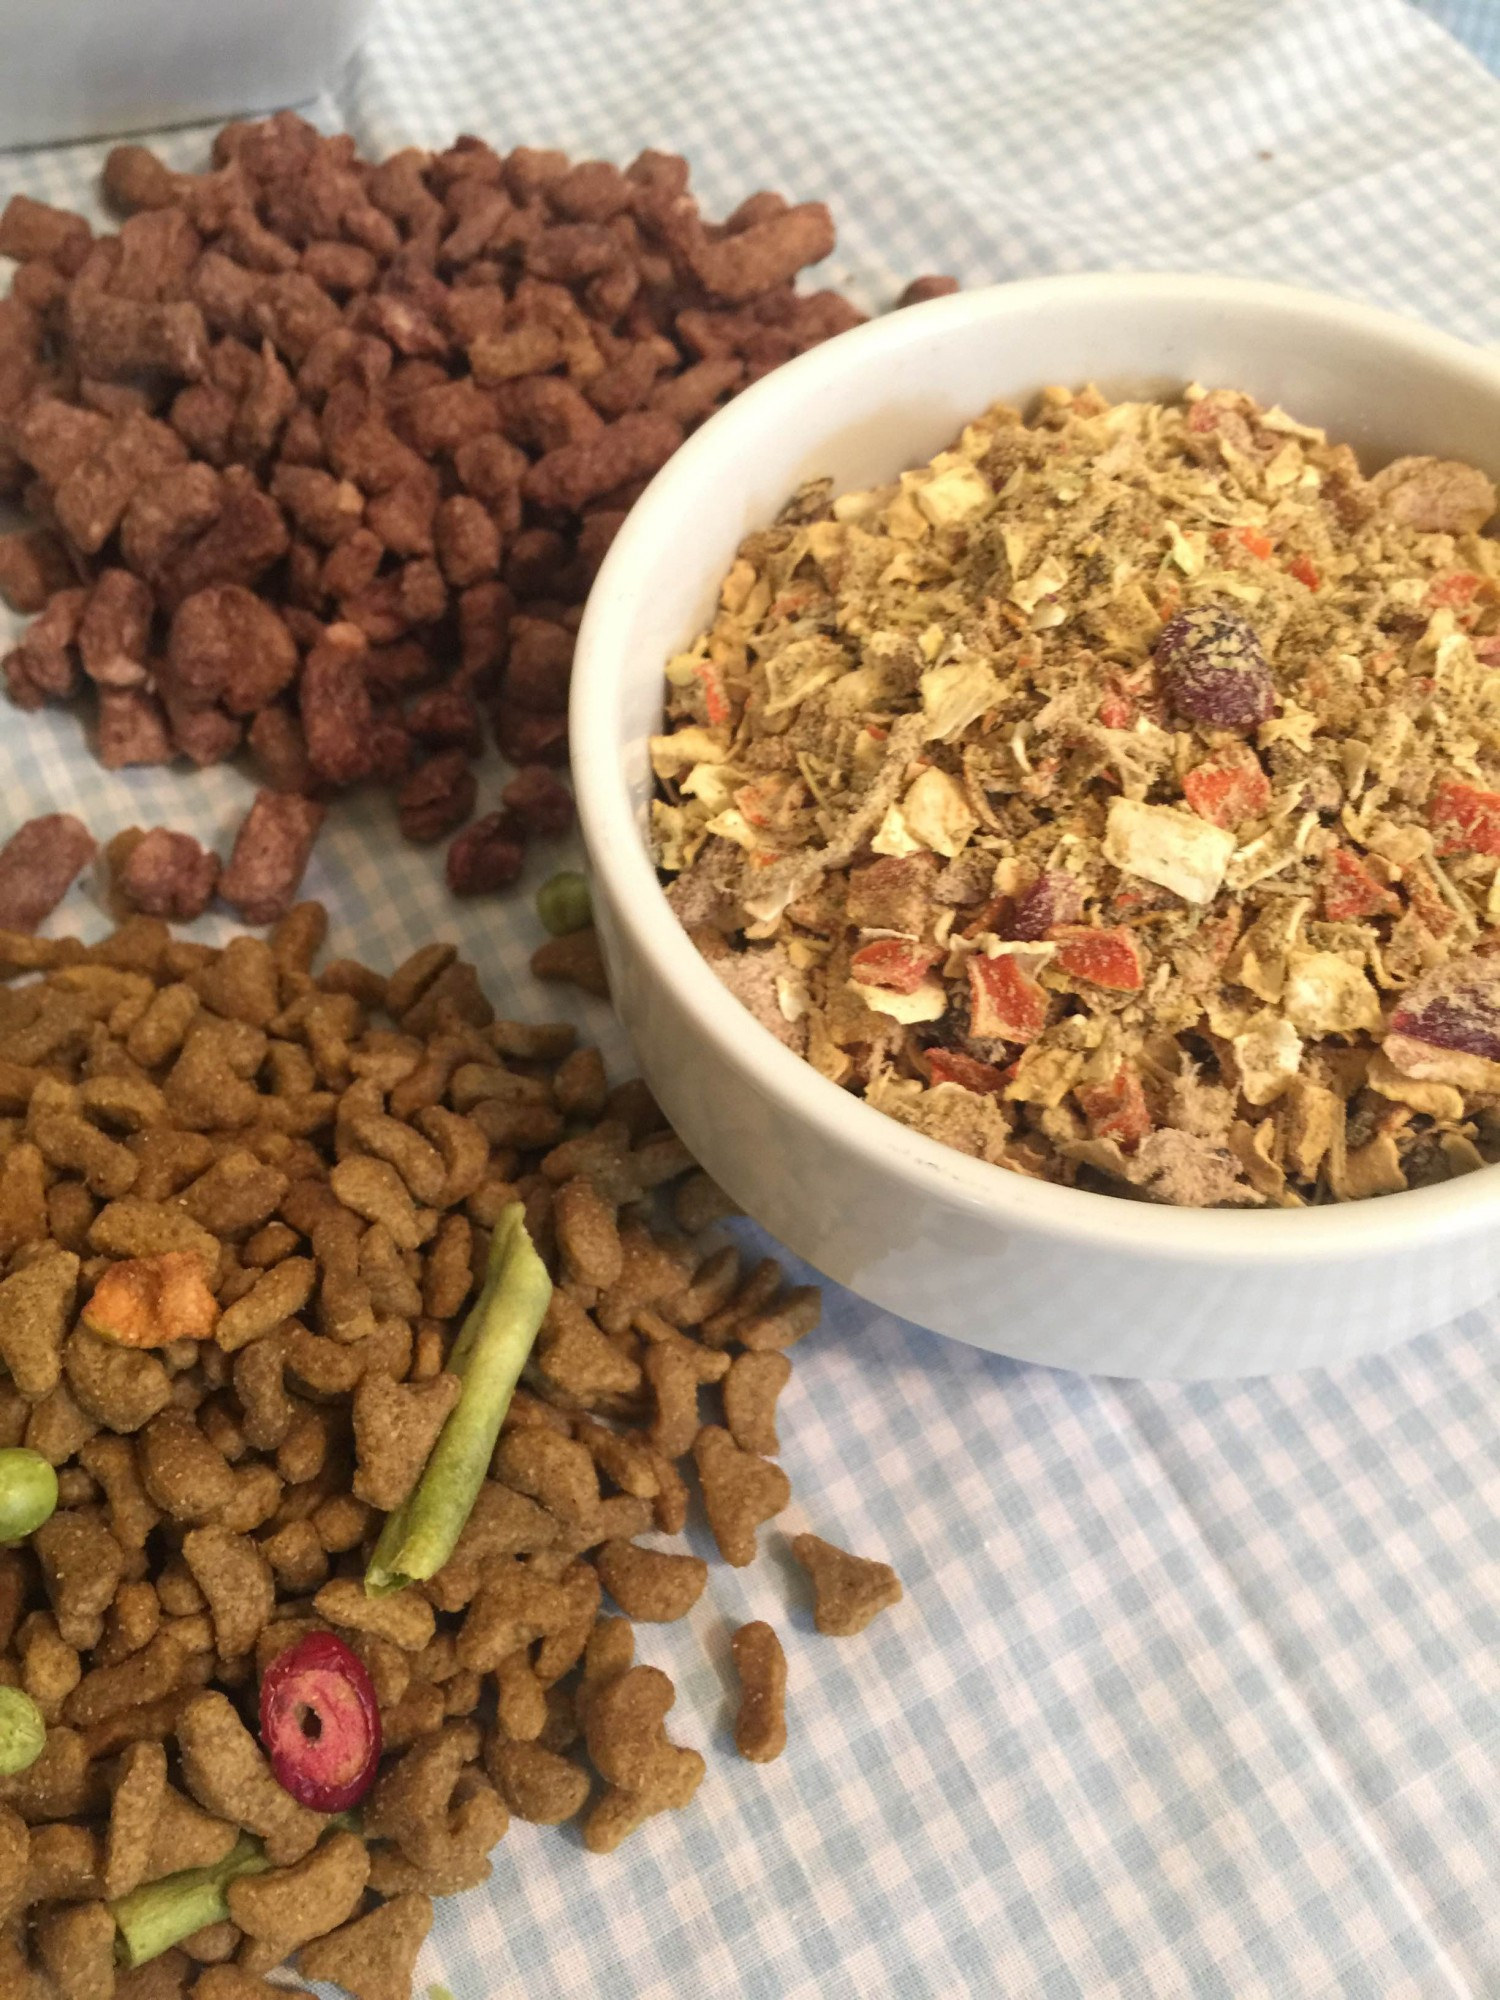 Choosing the Right Dog Food in Five Easy Steps